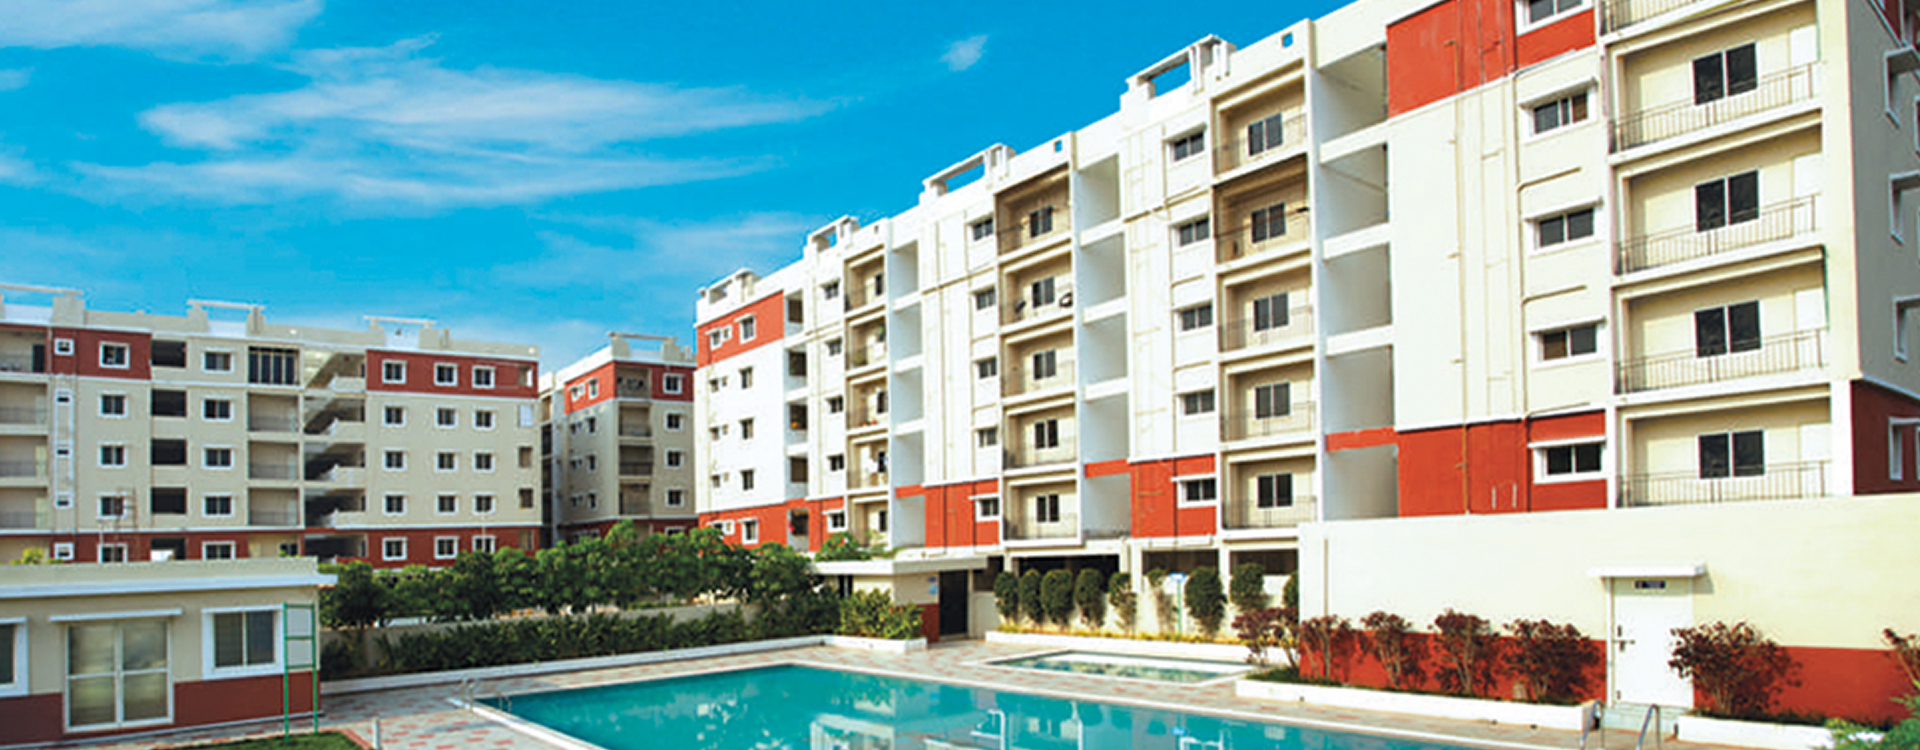 Why opt for budget-friendly ready-to-move-in gated communities?